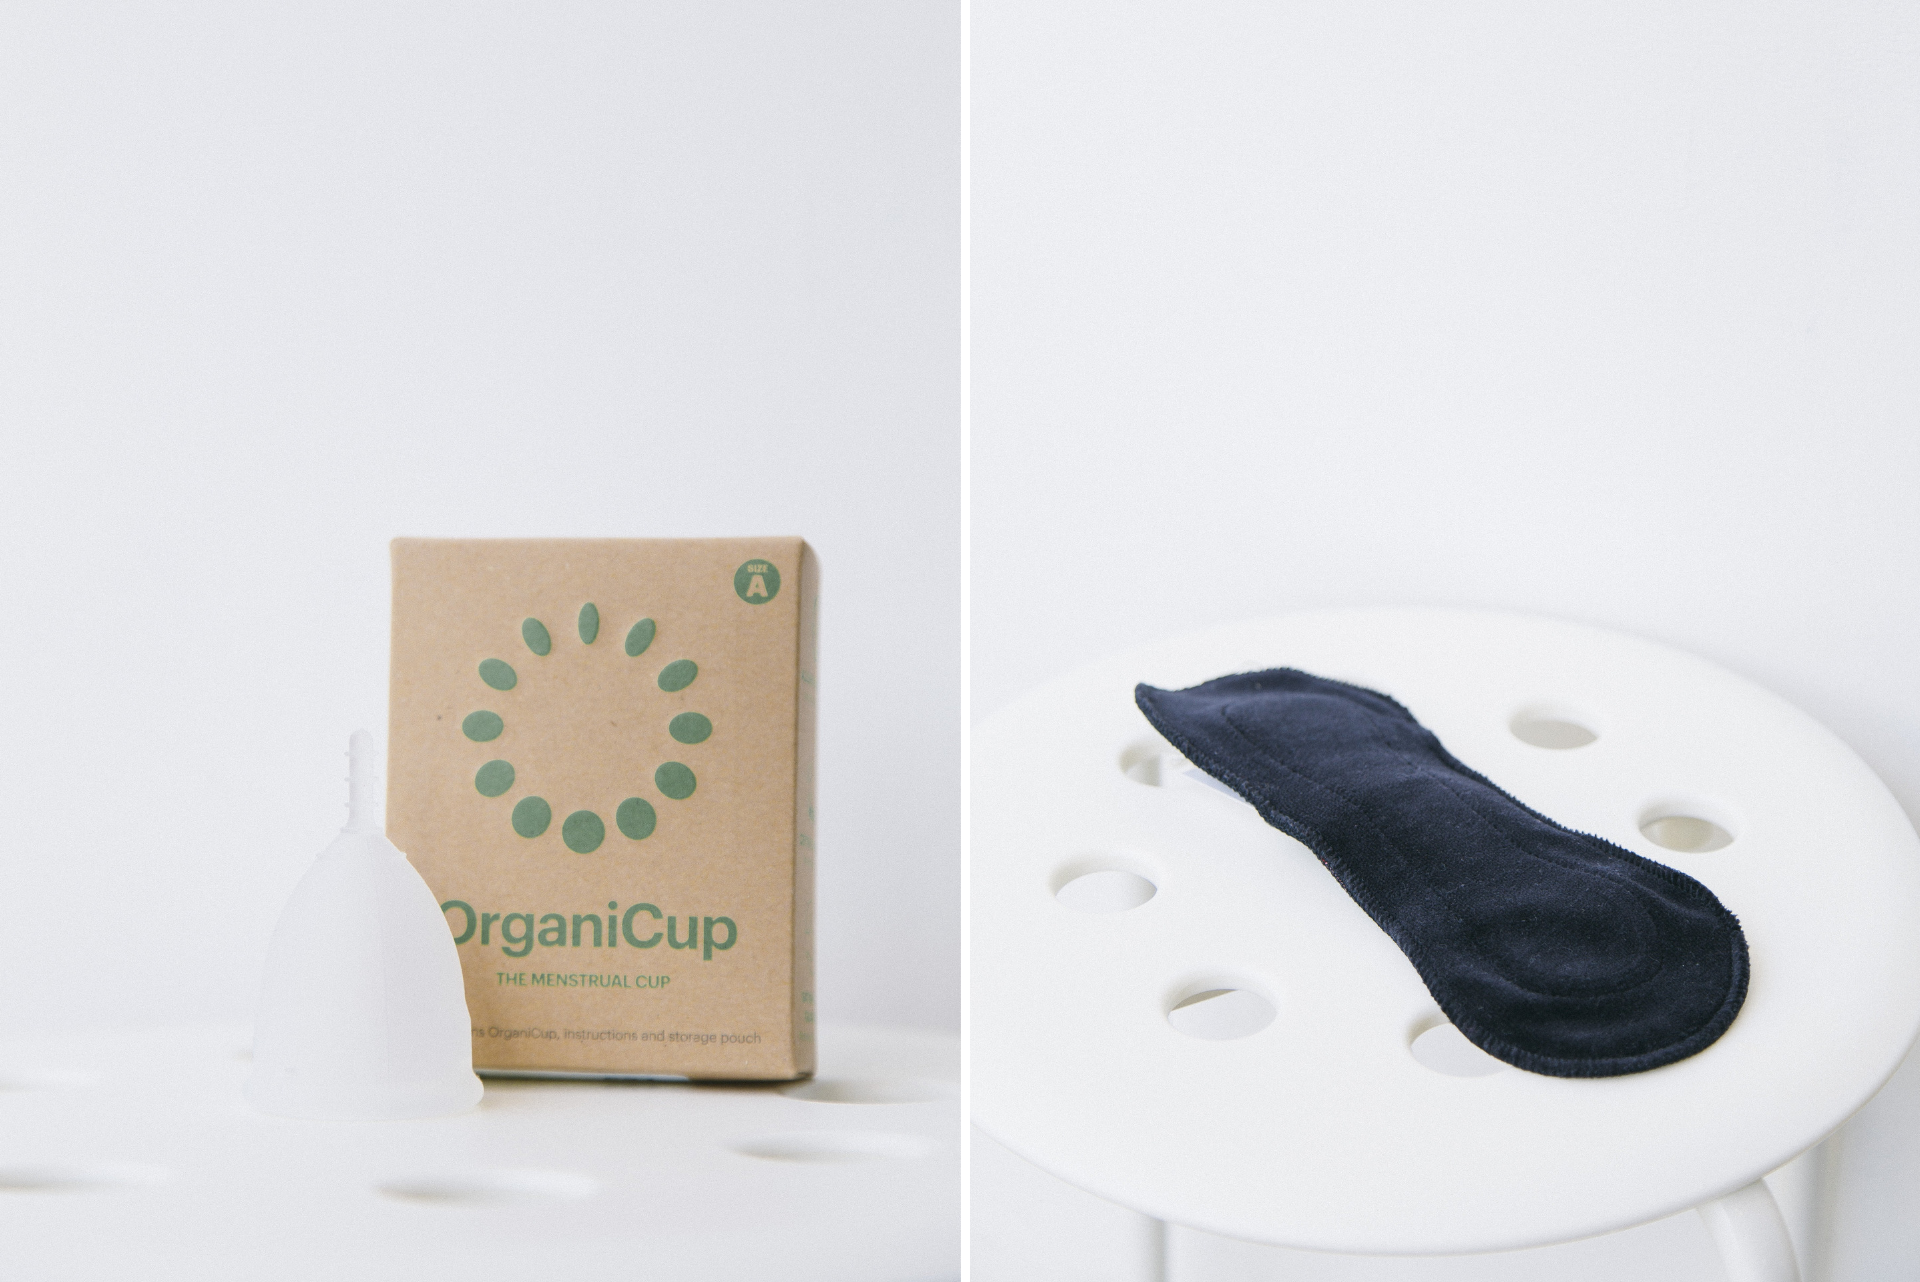 Eco-friendly sanitary products. OrganiCup menstrual cup. Honour Your Flow organic cotton reusable sanitary pads. 27 Best Eco-Friendly Travel Products That Will Change Your Life. Eco friendly products for sustainable travel. Eco-friendly products. Earth friendly products. Travel accessories. Eco friendly bags. Eco friendly travel bags. Eco friendly gifts. Eco friendly clothing. Eco friendly water bottles. Ethical travel. Responsible travel. Eco friendly holidays. Eco friendly tourism. Eco friendly hotels. Eco friendly vacations. Sustainable tourism. Ecotourism. Sustainable holidays. Eco travel. Click through to read more...